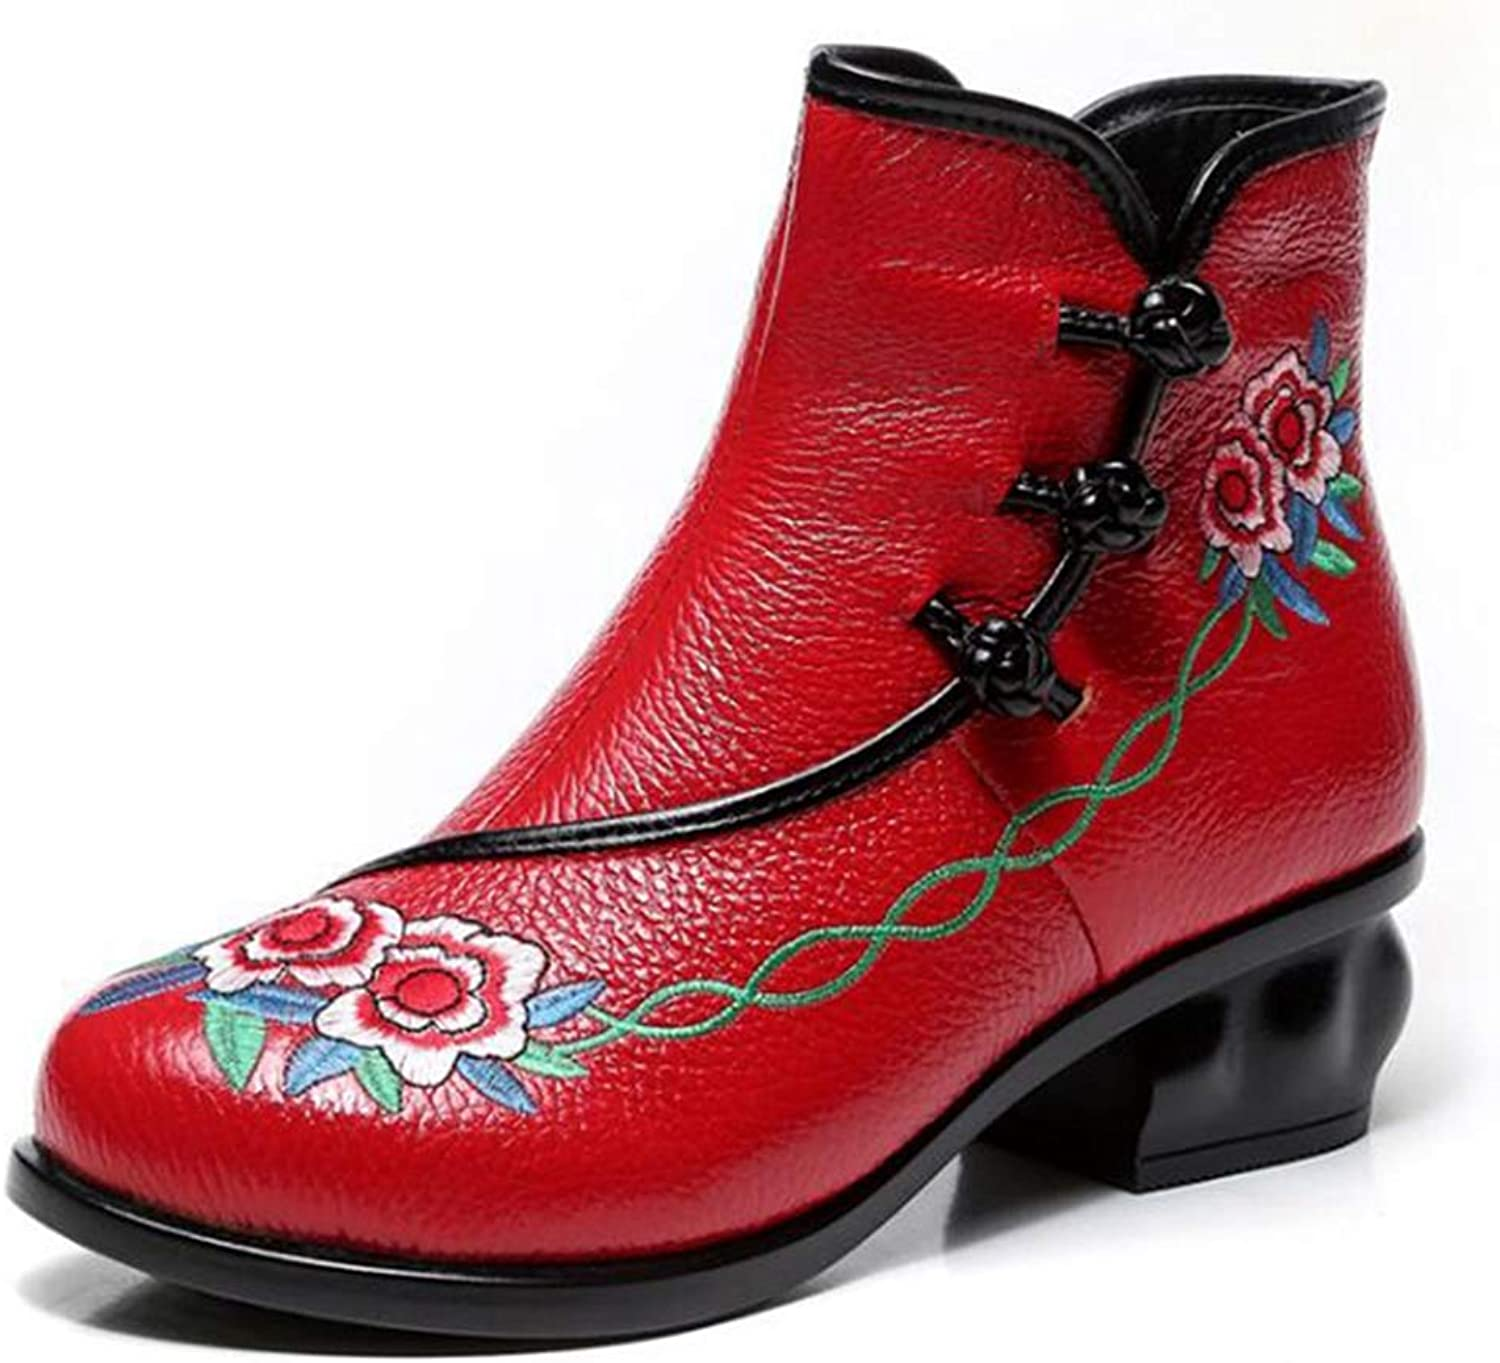 Hoxekle Woman Fashion Embroidery Ankle Boots Side Zipper Round Toe Retro Fashion Soft Mother Outdoor Short Boots